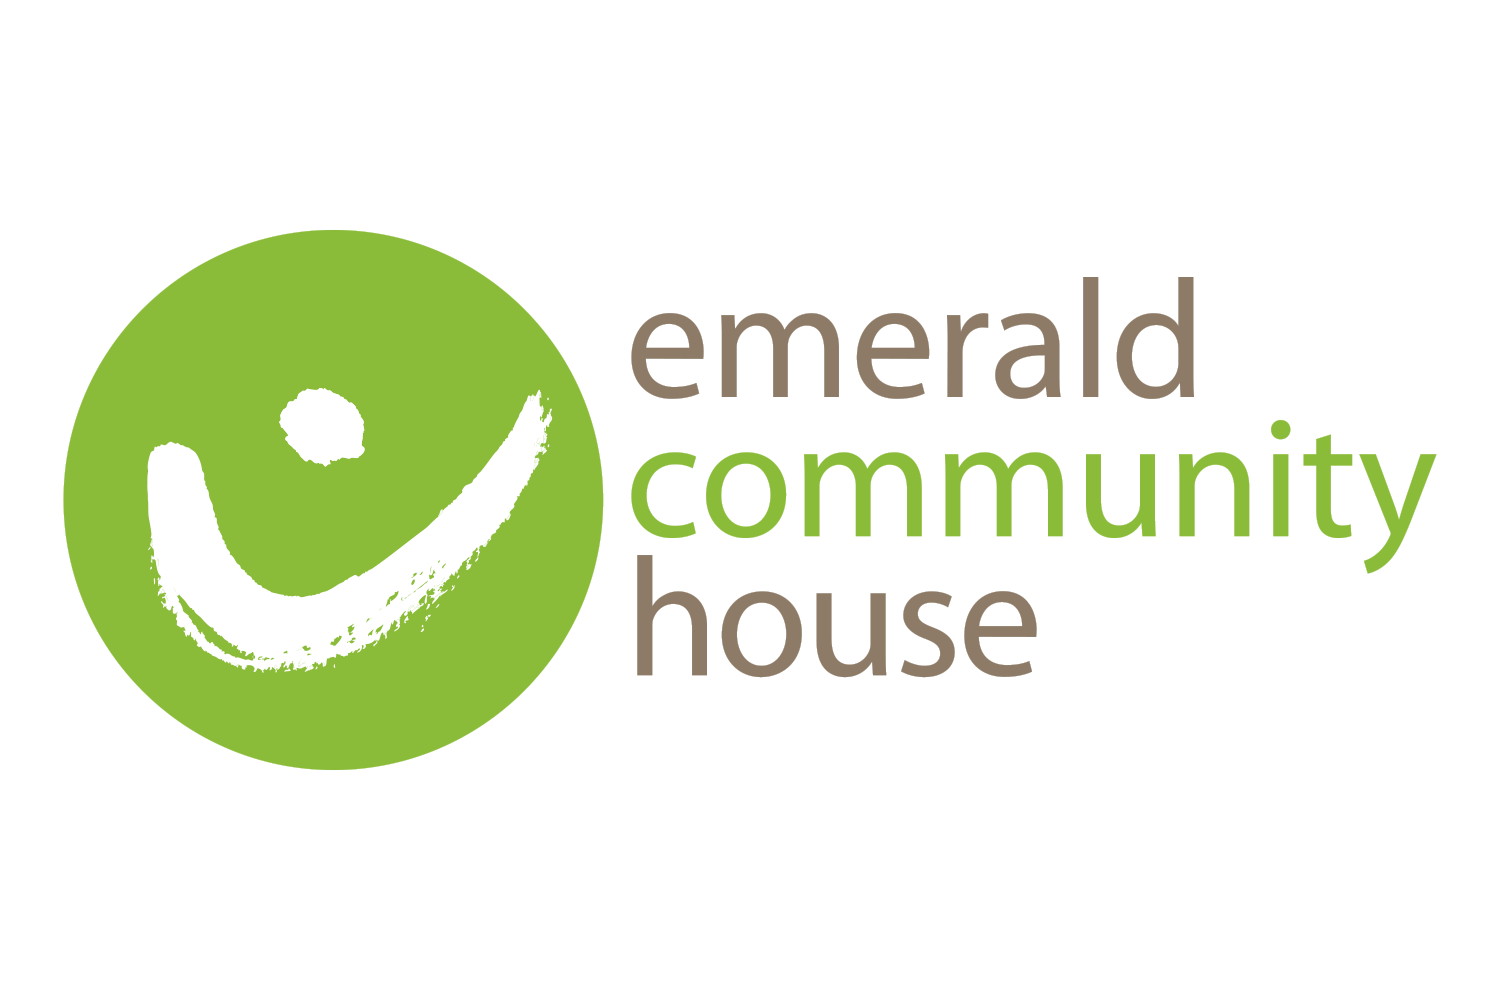 Emerald Community House